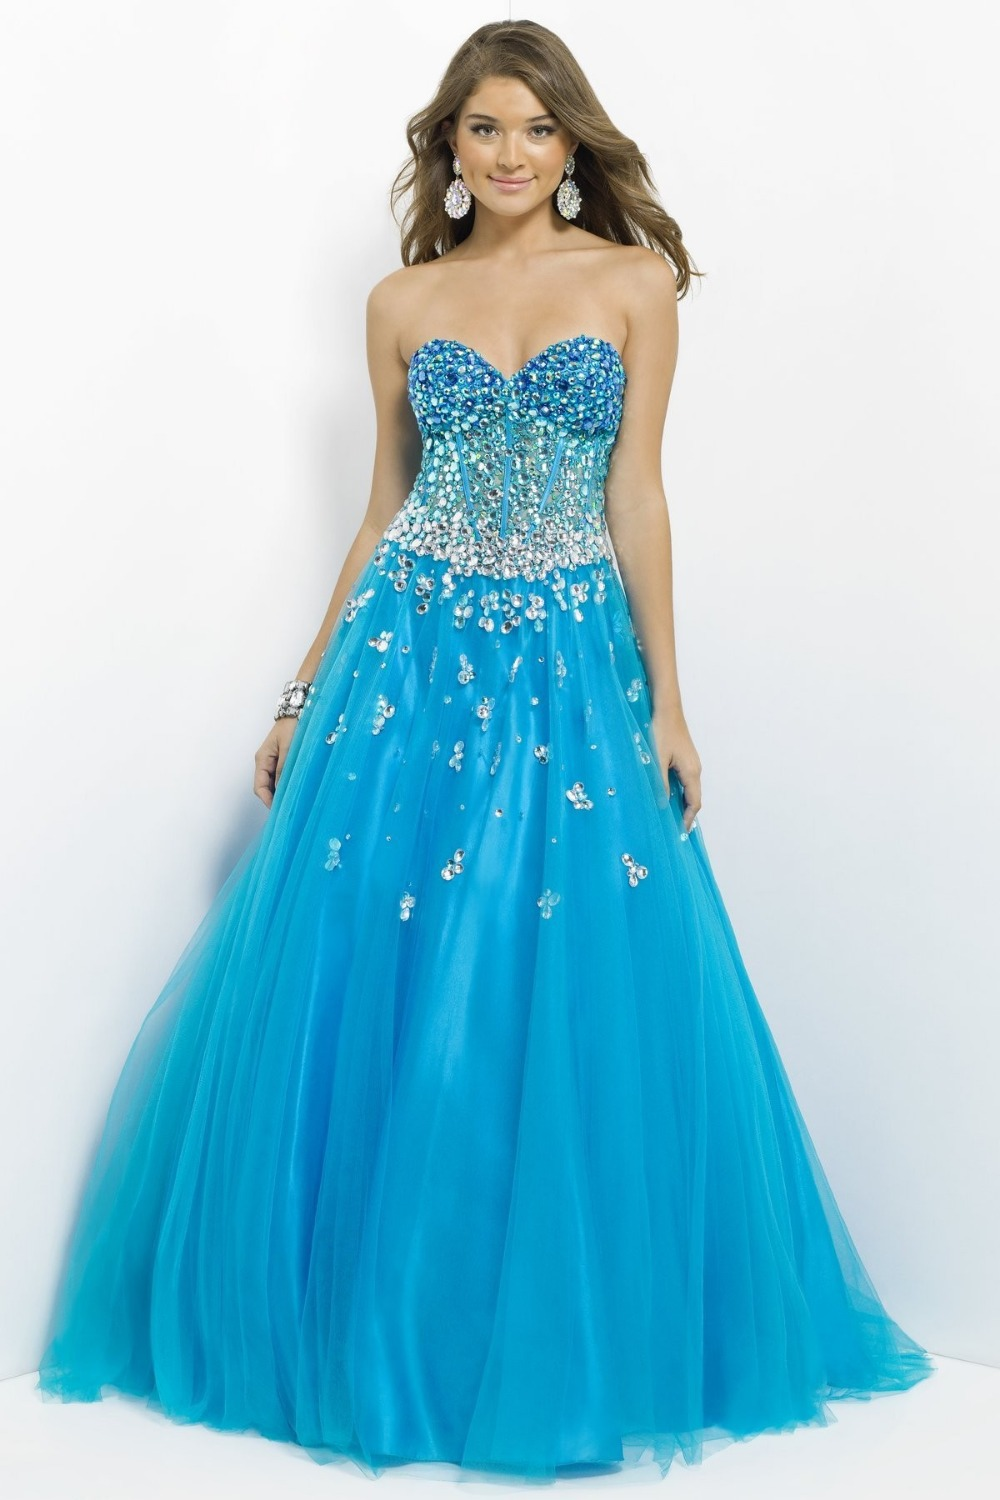 Magnificent Prom Dresses Buffalo Ny Mold - All Wedding Dresses ...